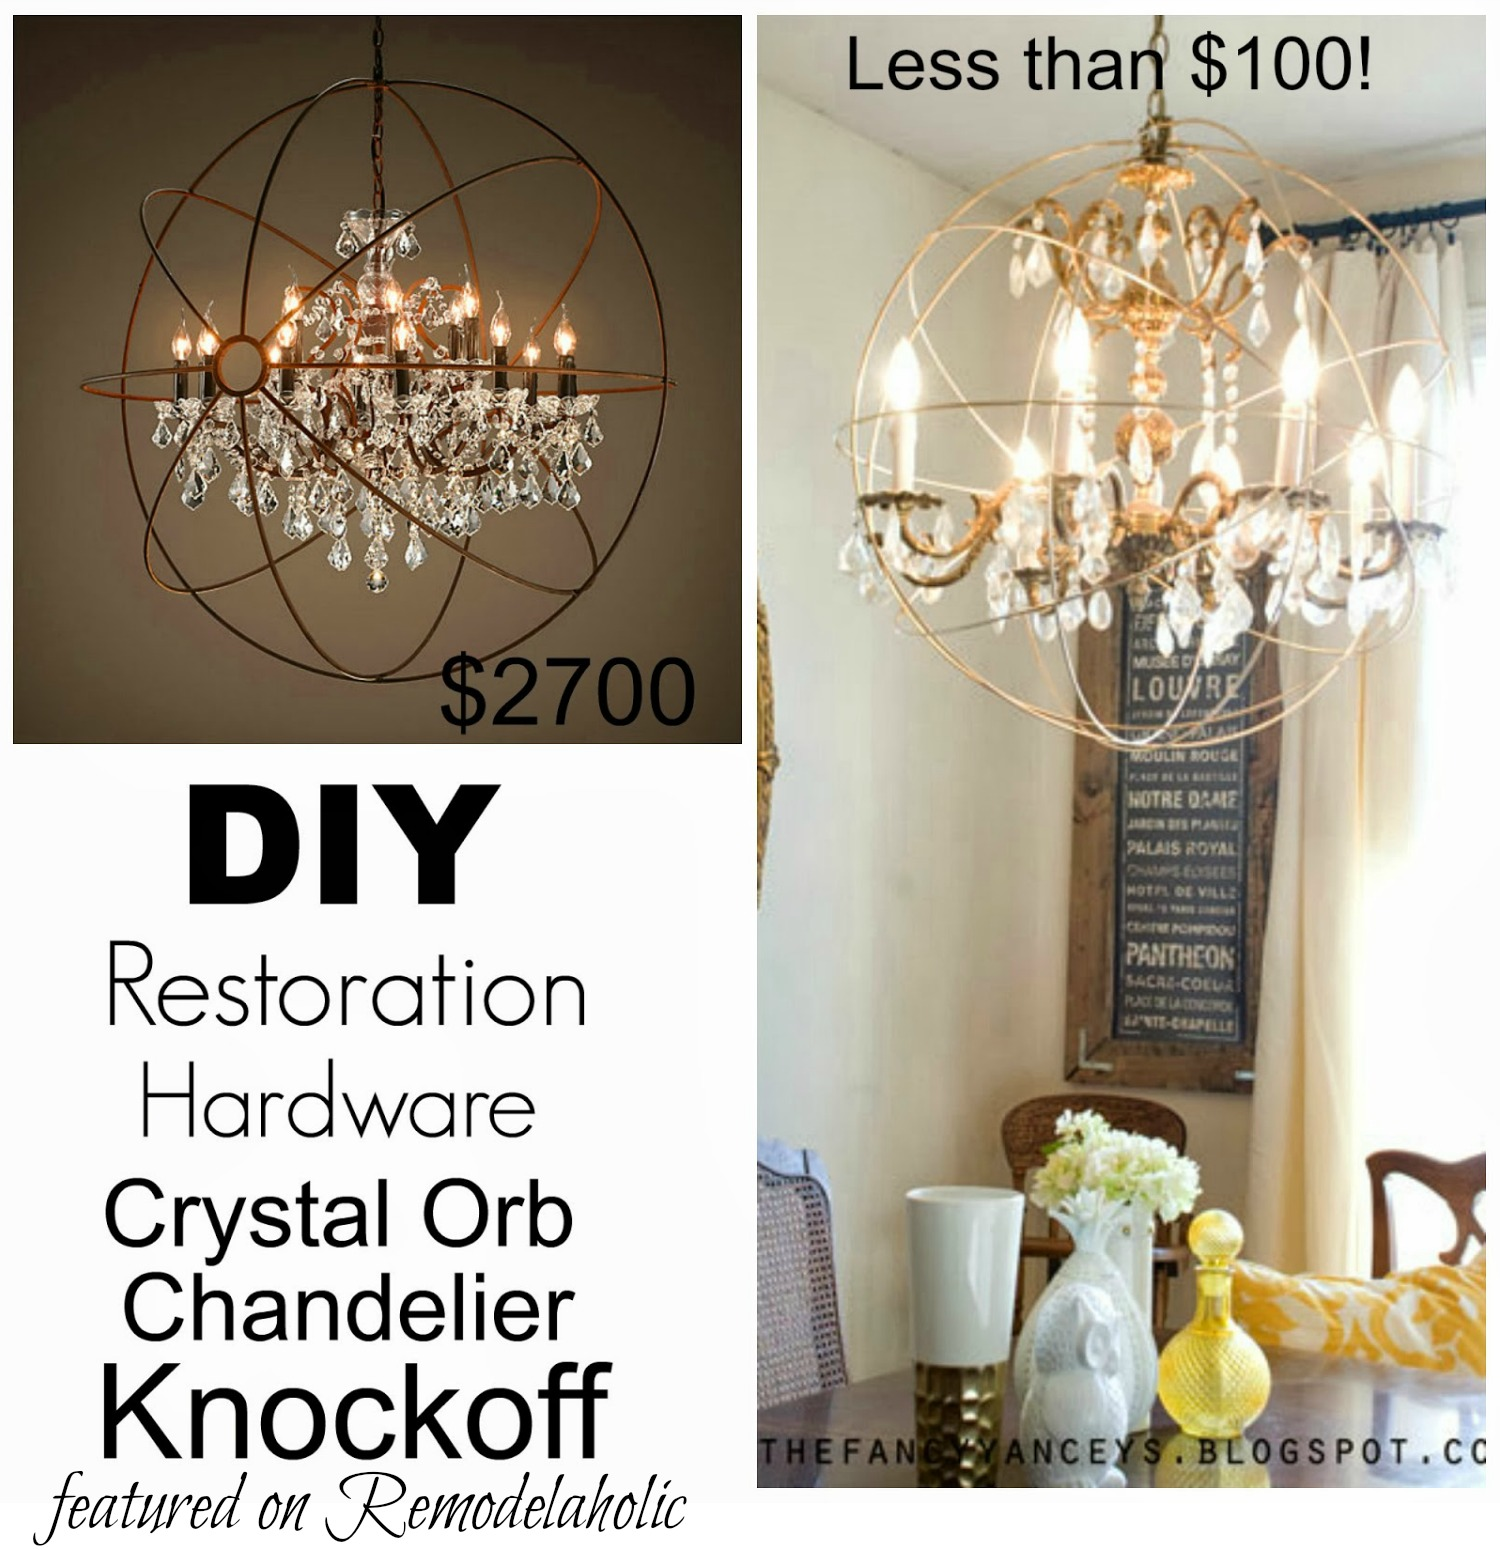 Charming How To Create A Crystal Orb Chandelier Like Restoration Hardware | Vintage  Romance Style Featured On